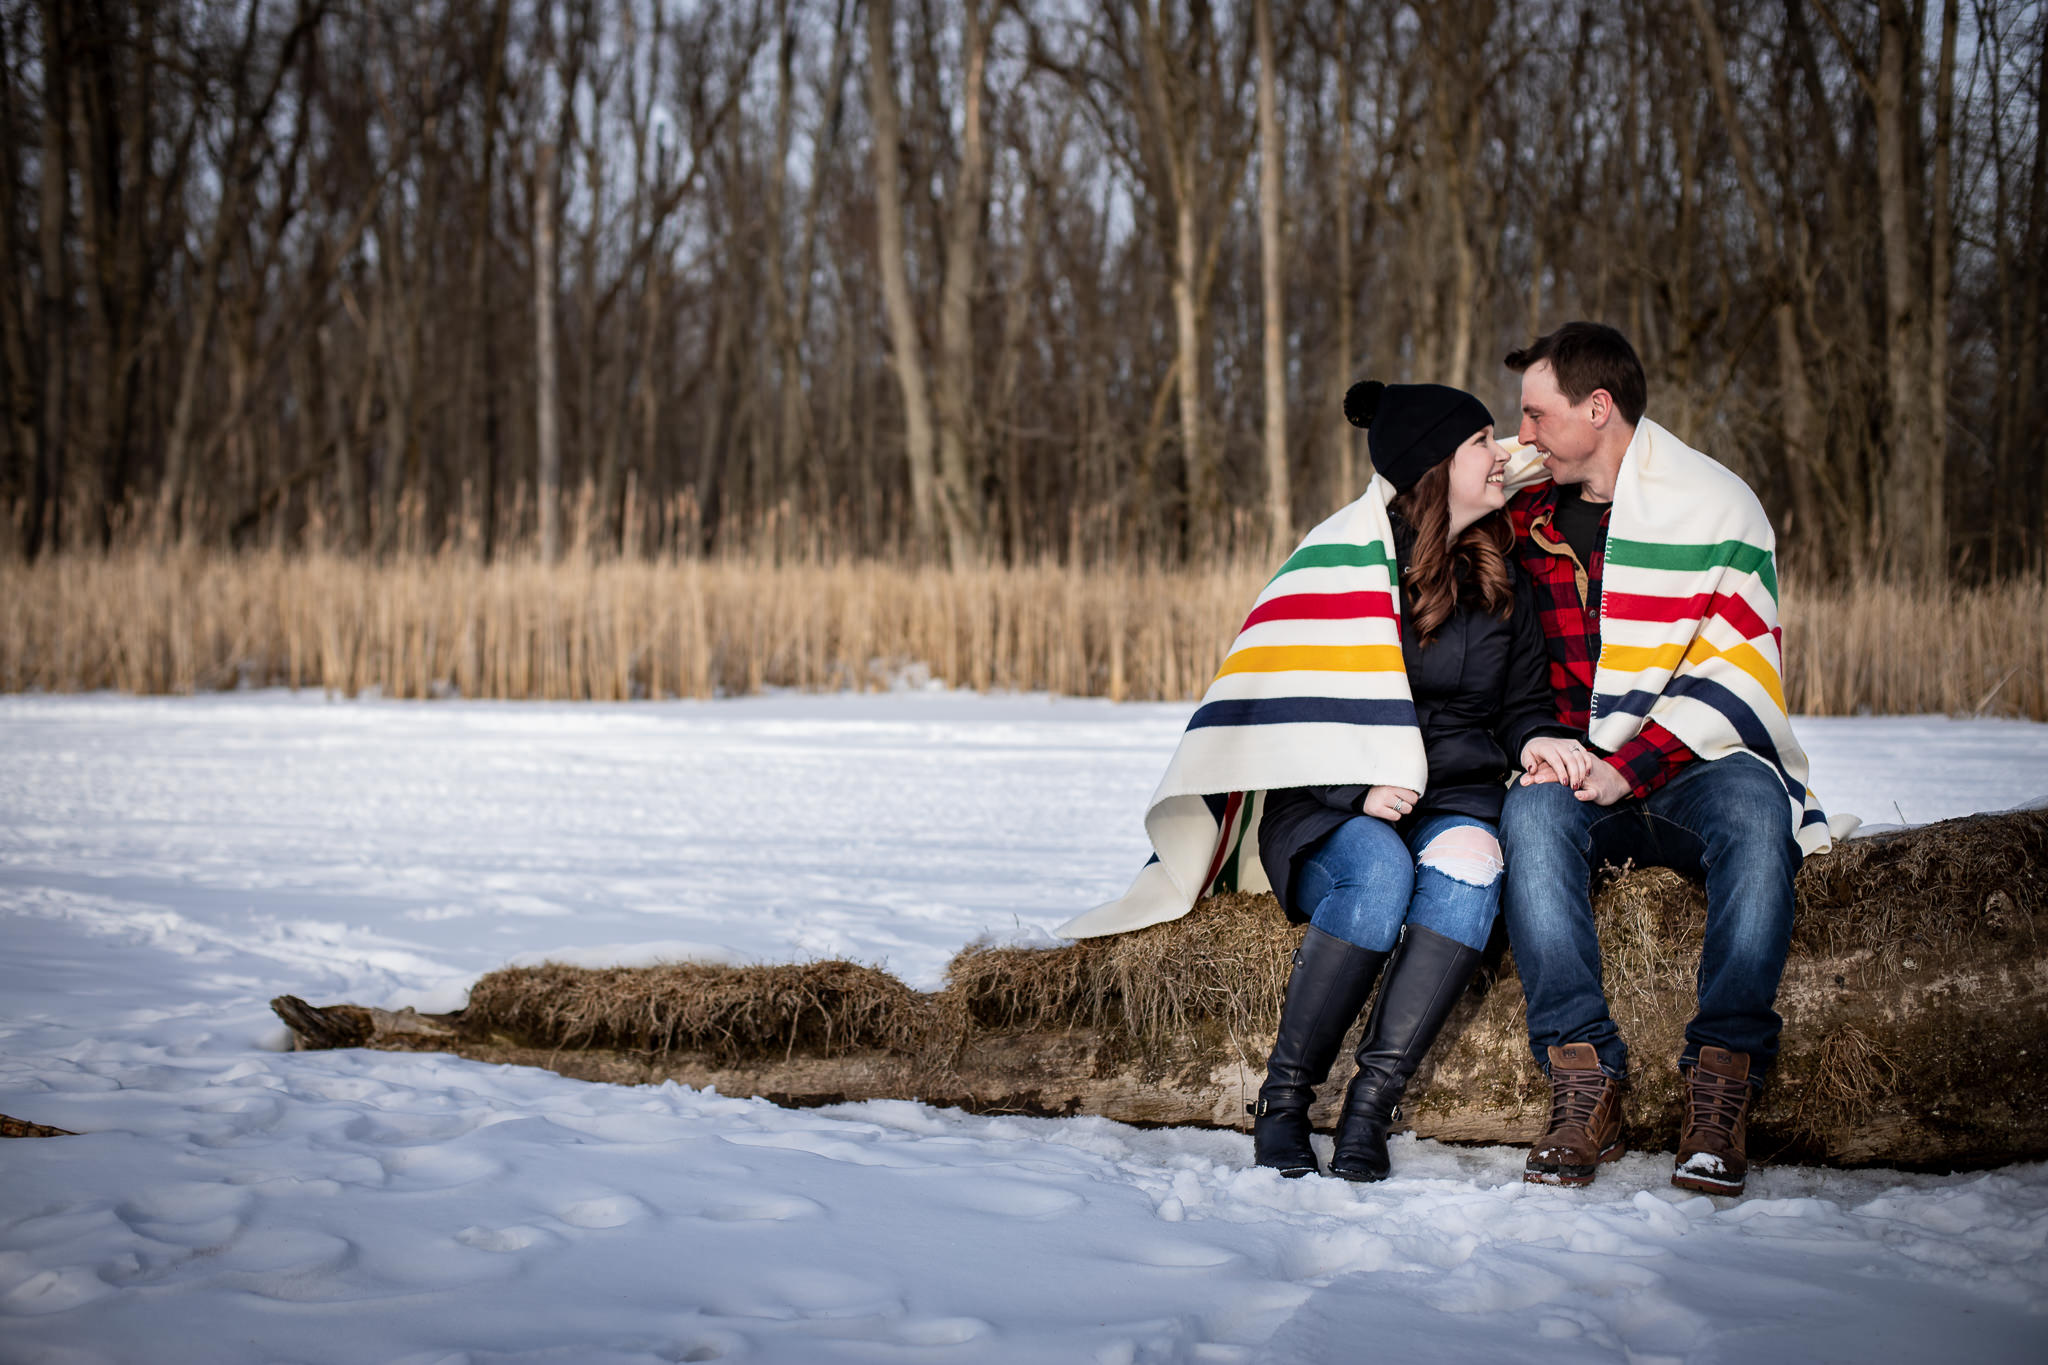 ice-skating-hockey-engagement-photos-15.jpg